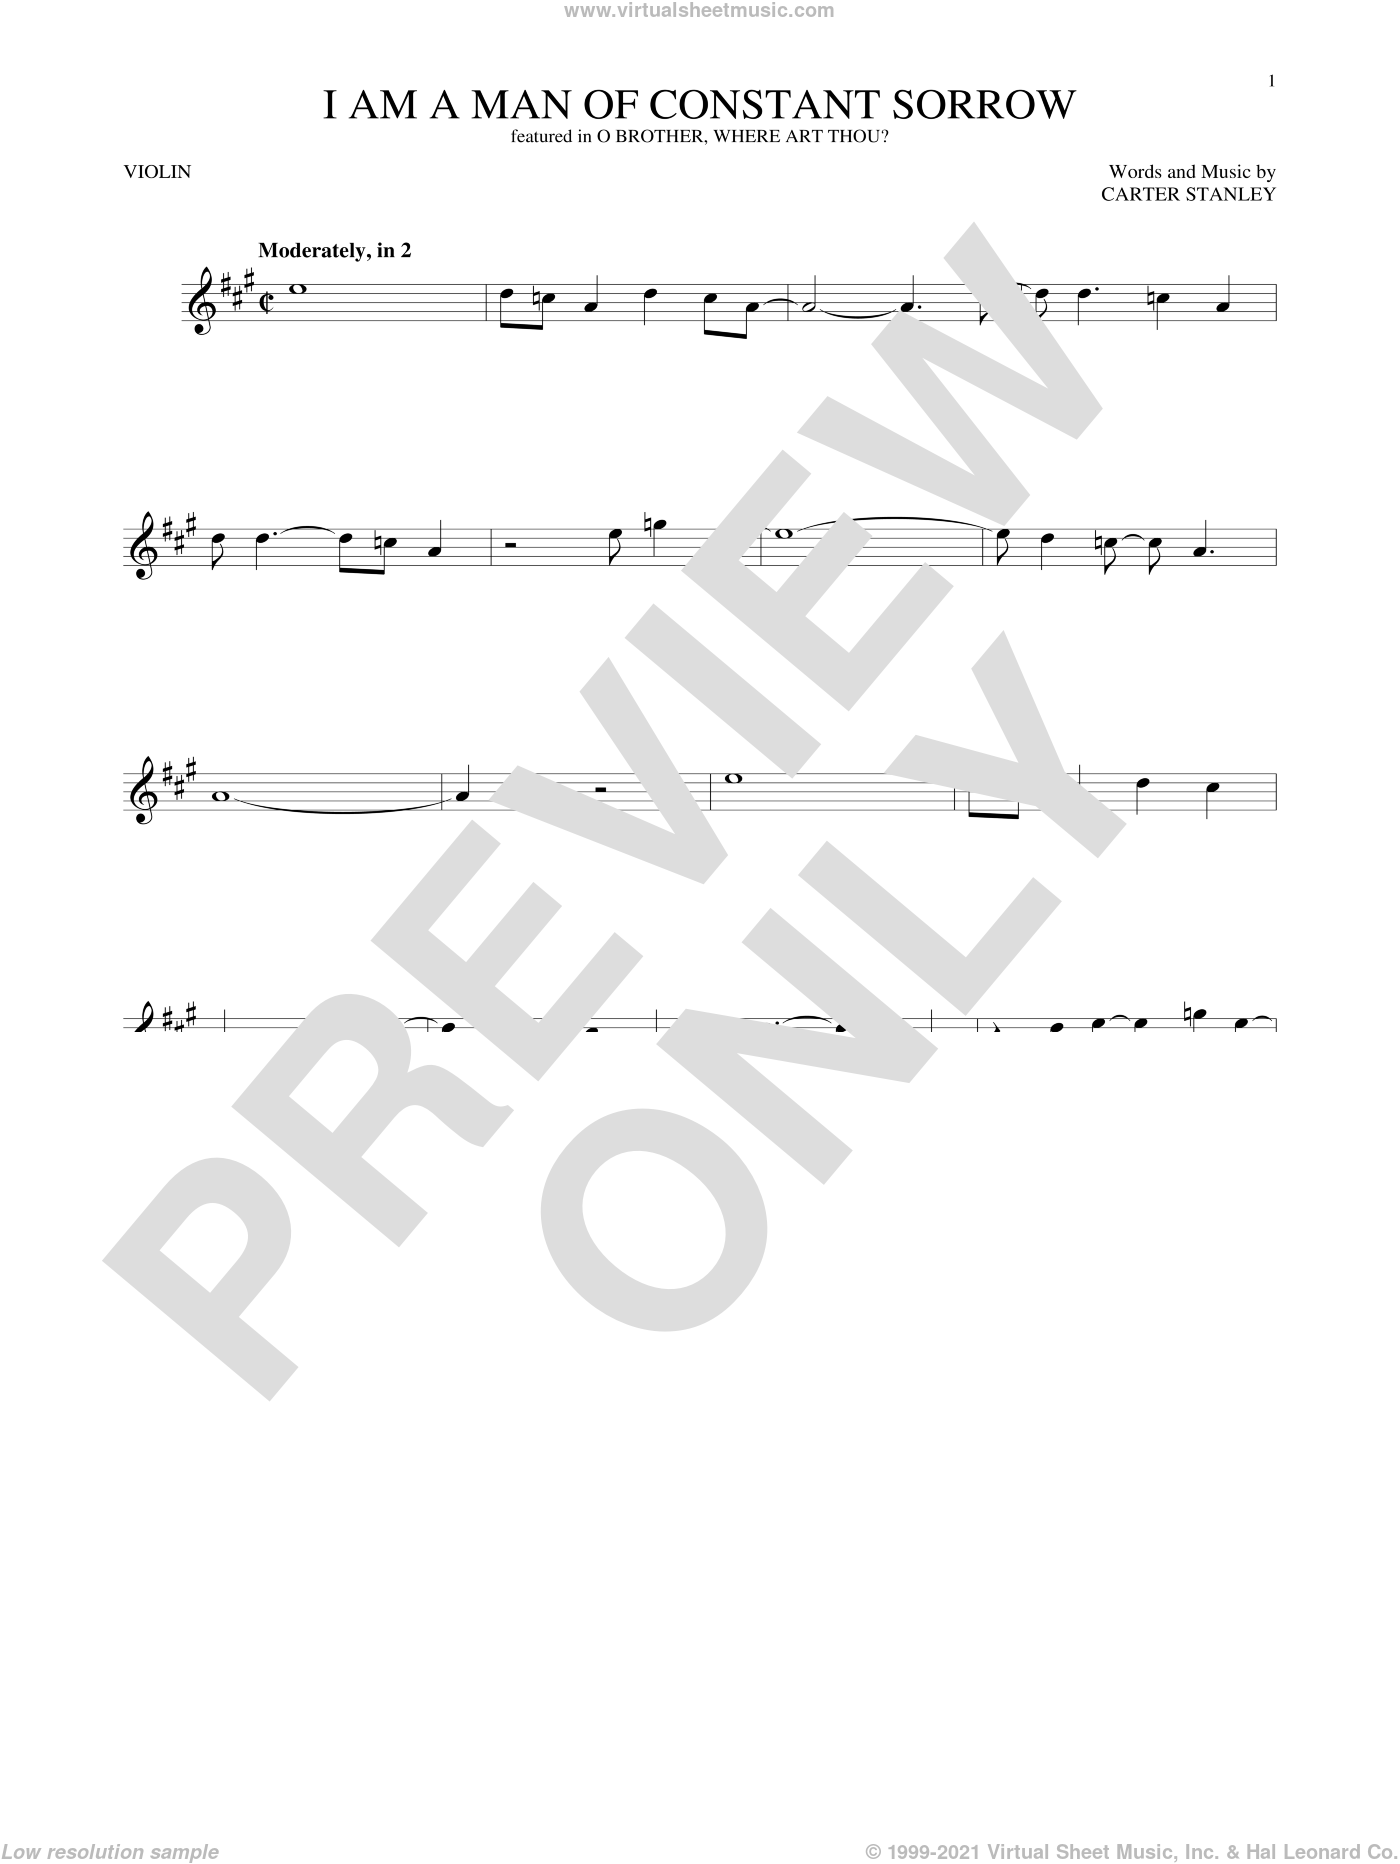 I Am A Man Of Constant Sorrow sheet music for violin solo by Carter Stanley